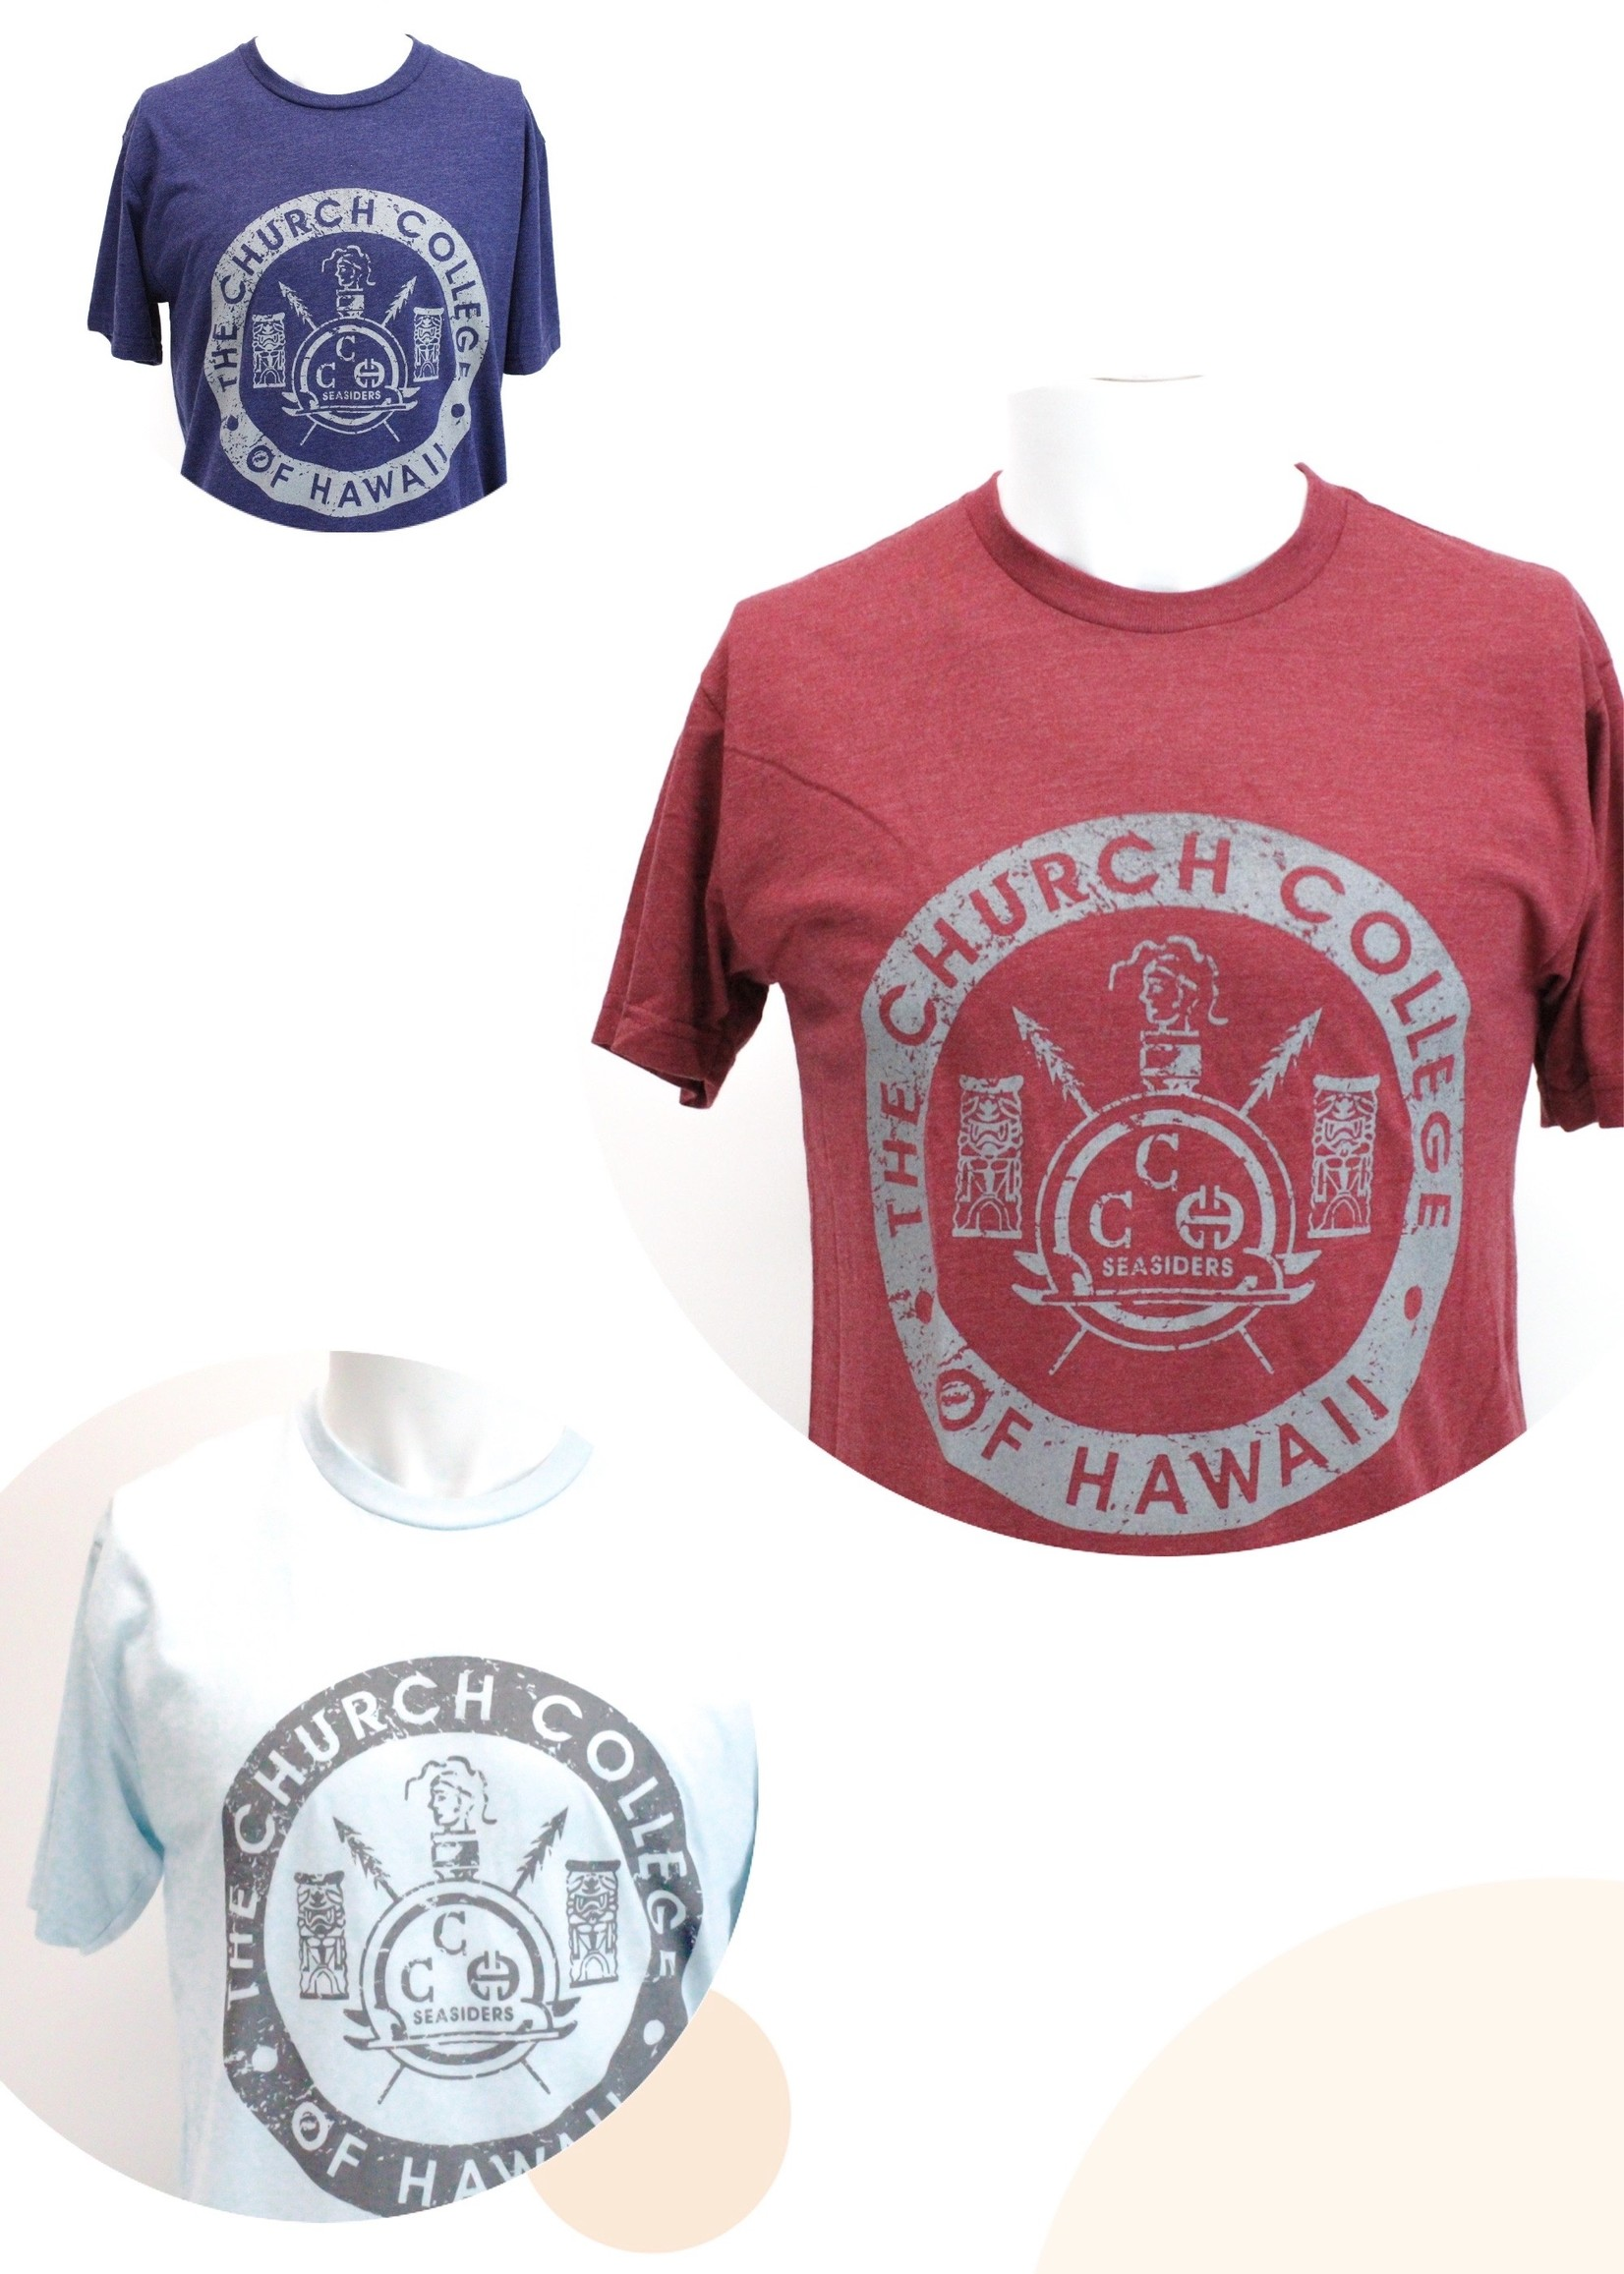 CCH Church College of Hawaii Tee